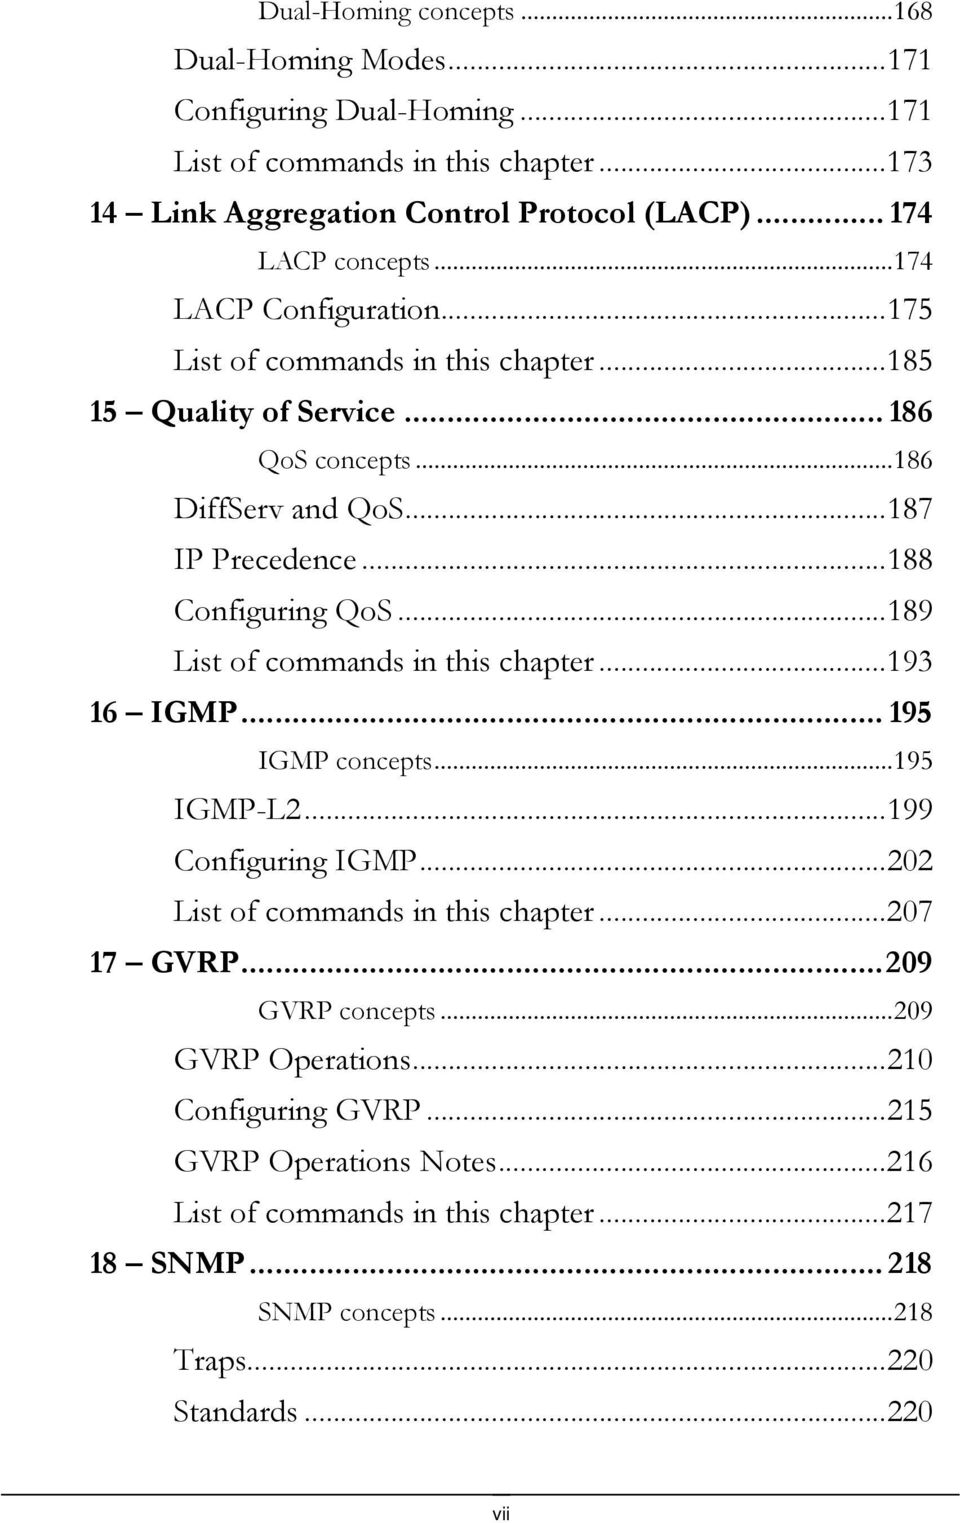 ..189 List of commands in this chapter...193 16 IGMP... 195 IGMP concepts...195 IGMP-L2...199 Configuring IGMP...202 List of commands in this chapter...207 17 GVRP...209 GVRP concepts.